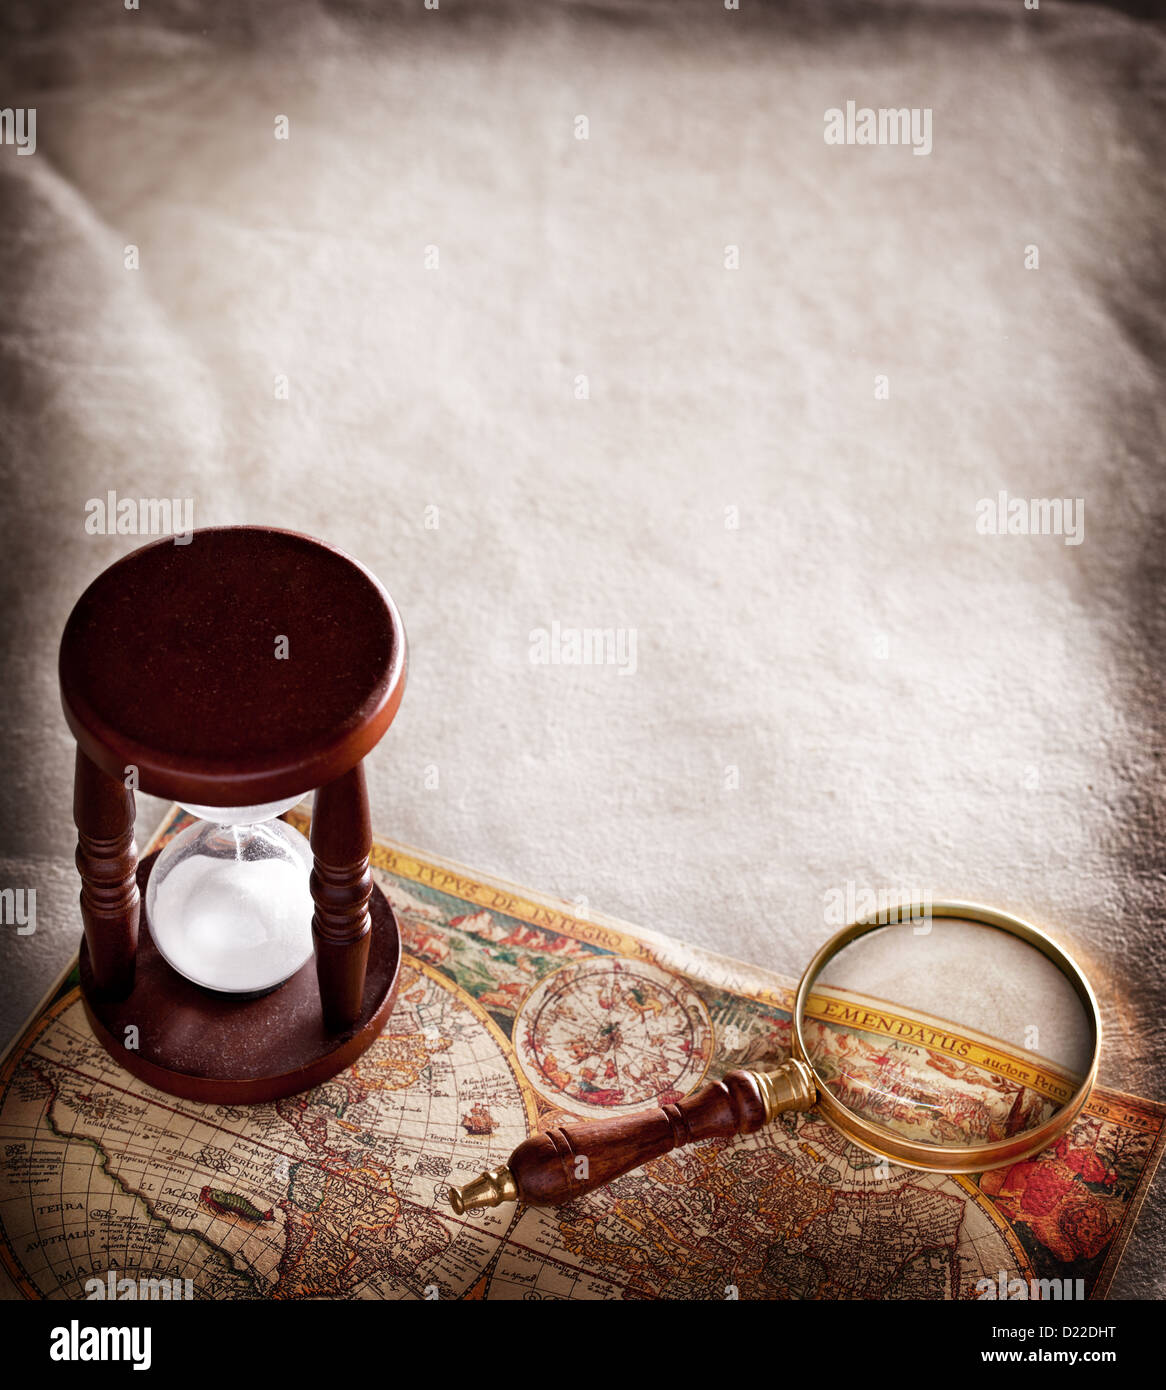 Hourglass with a magnifying glass on old parchment. - Stock Image